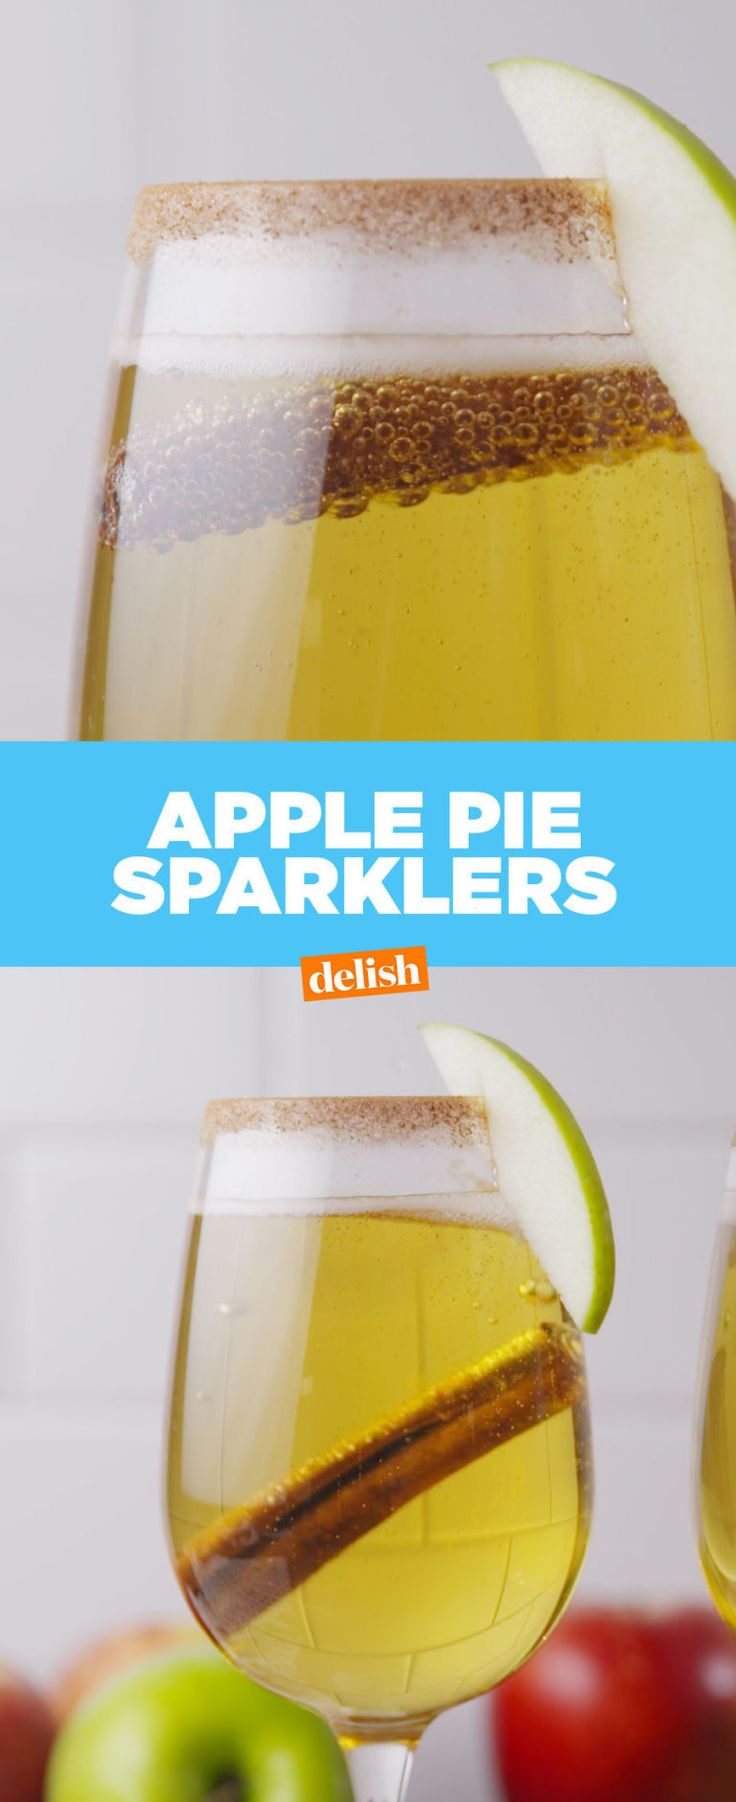 Apple Pie Sparklers Are The Best Way To Toast To Fall - Delish.com